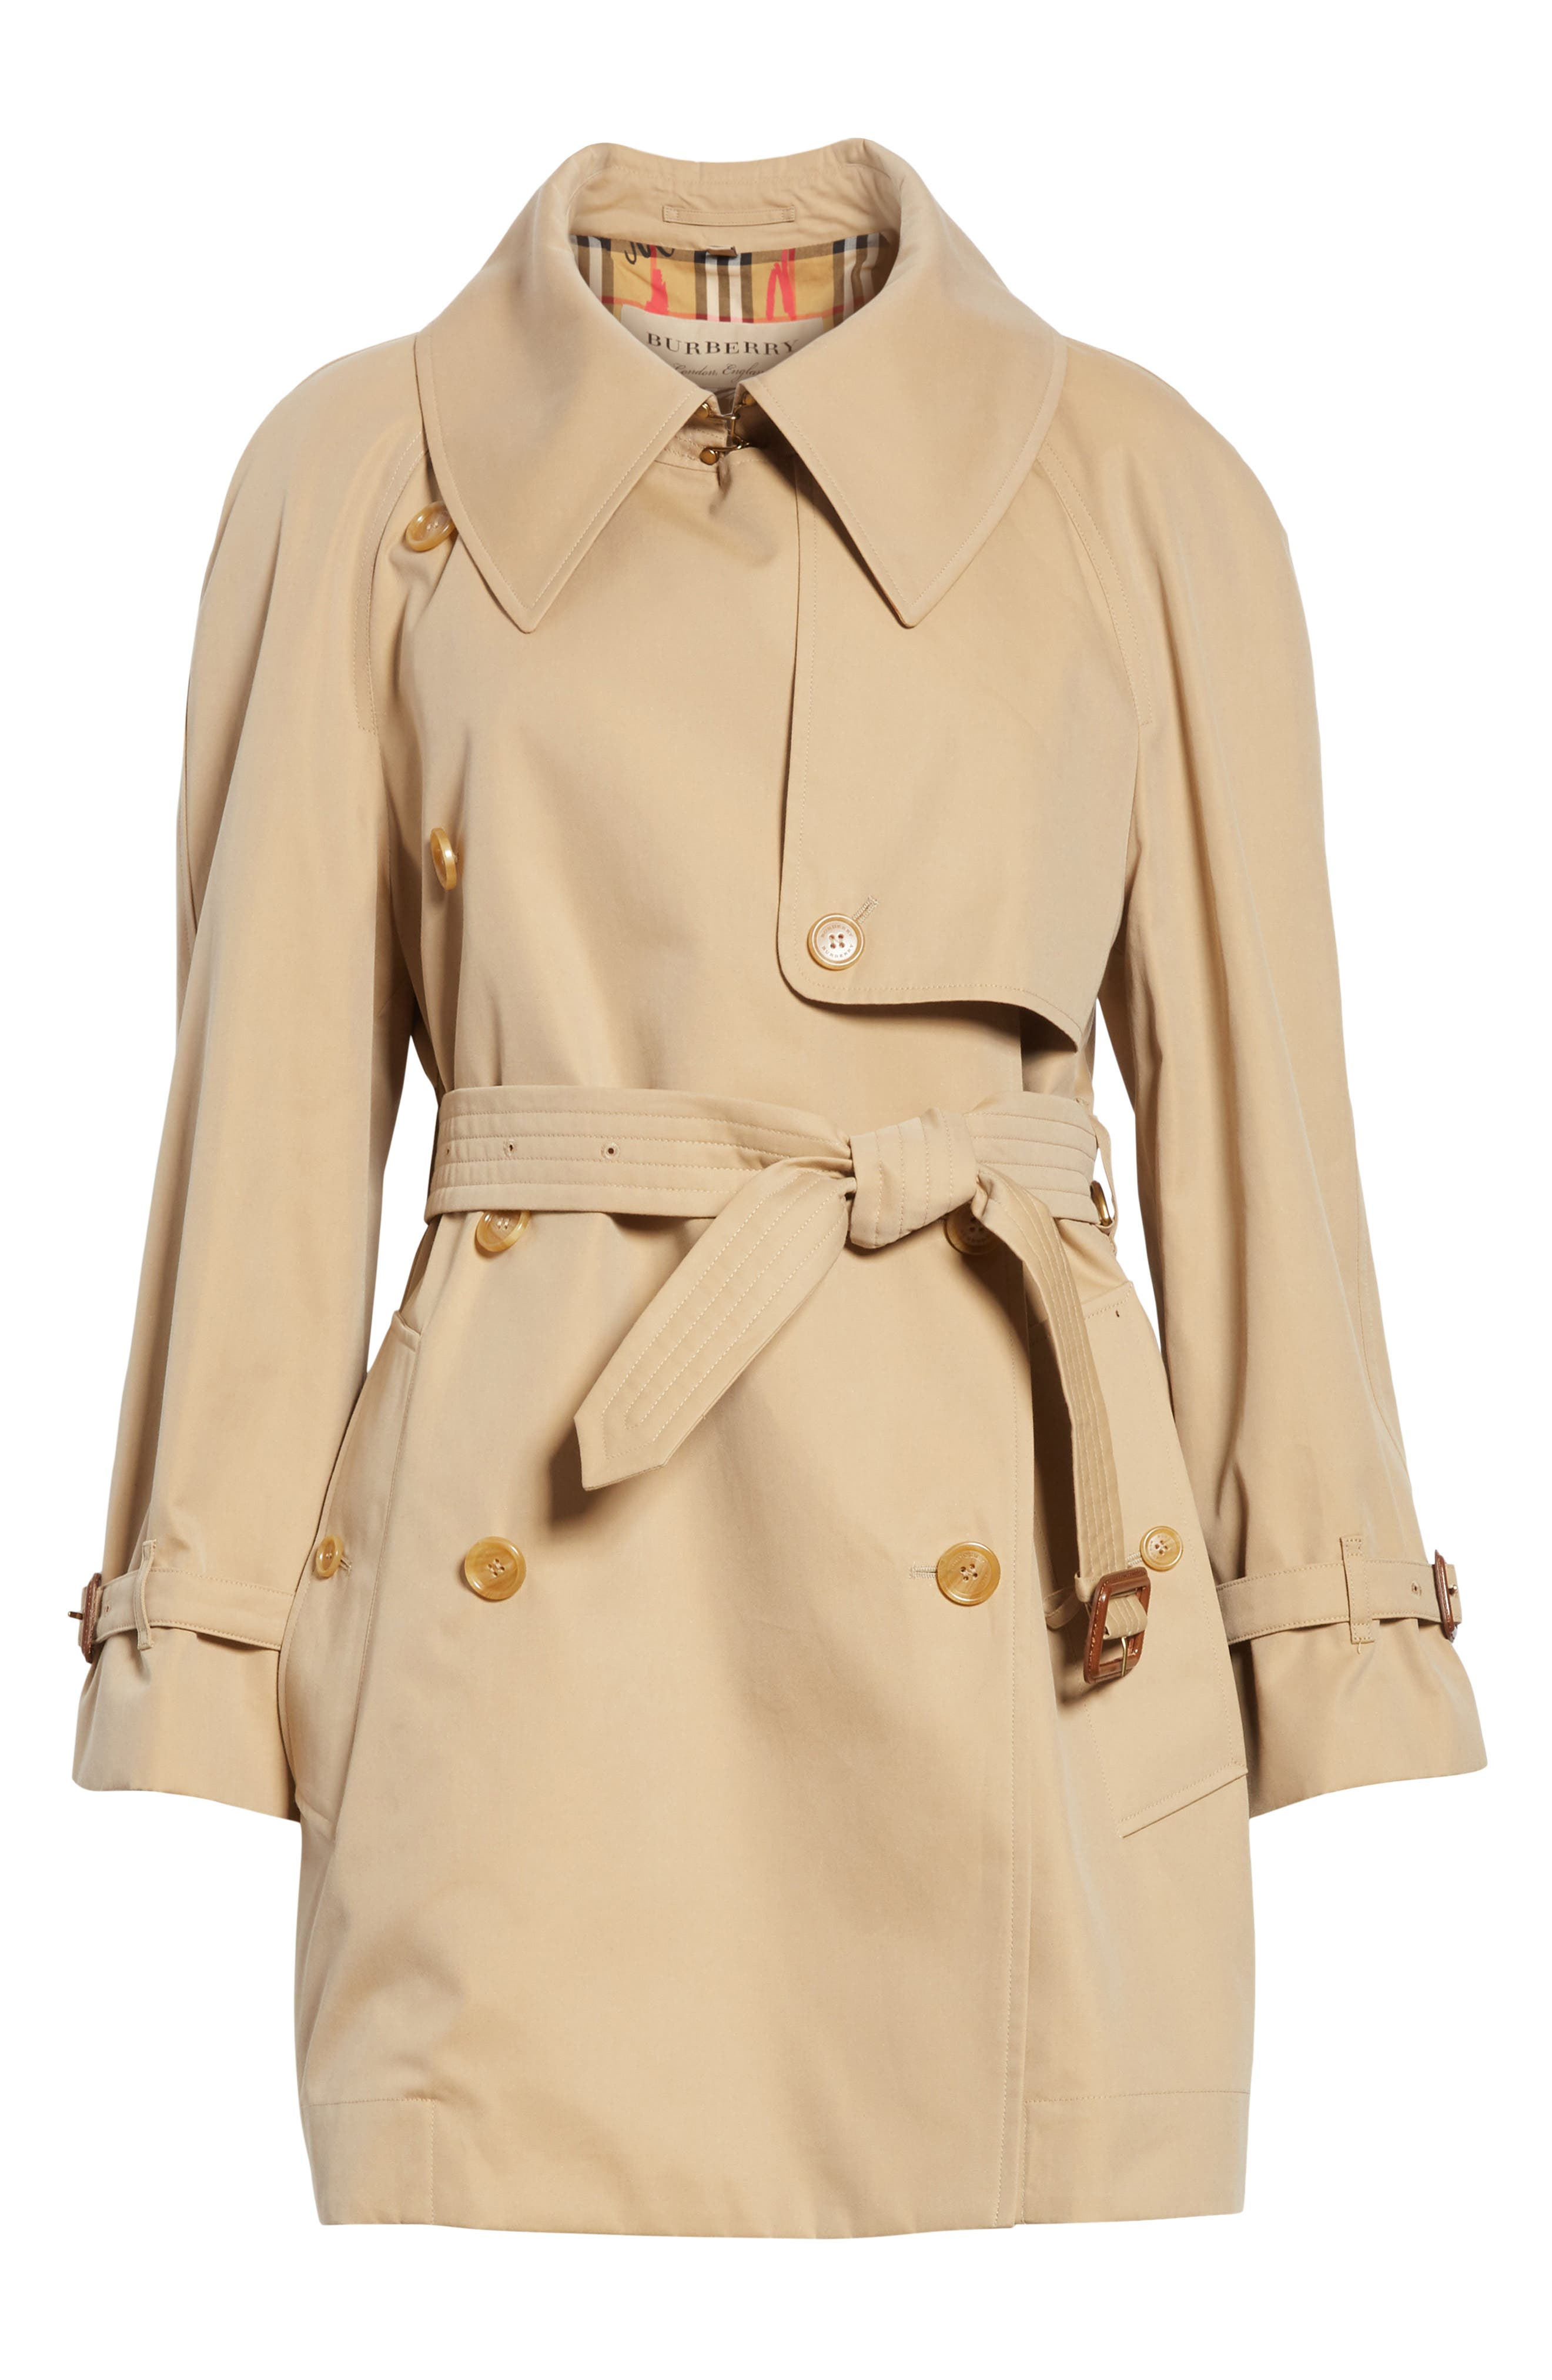 Fortingall Cotton Gabardine Trench Coat,                             Alternate thumbnail 5, color,                             255